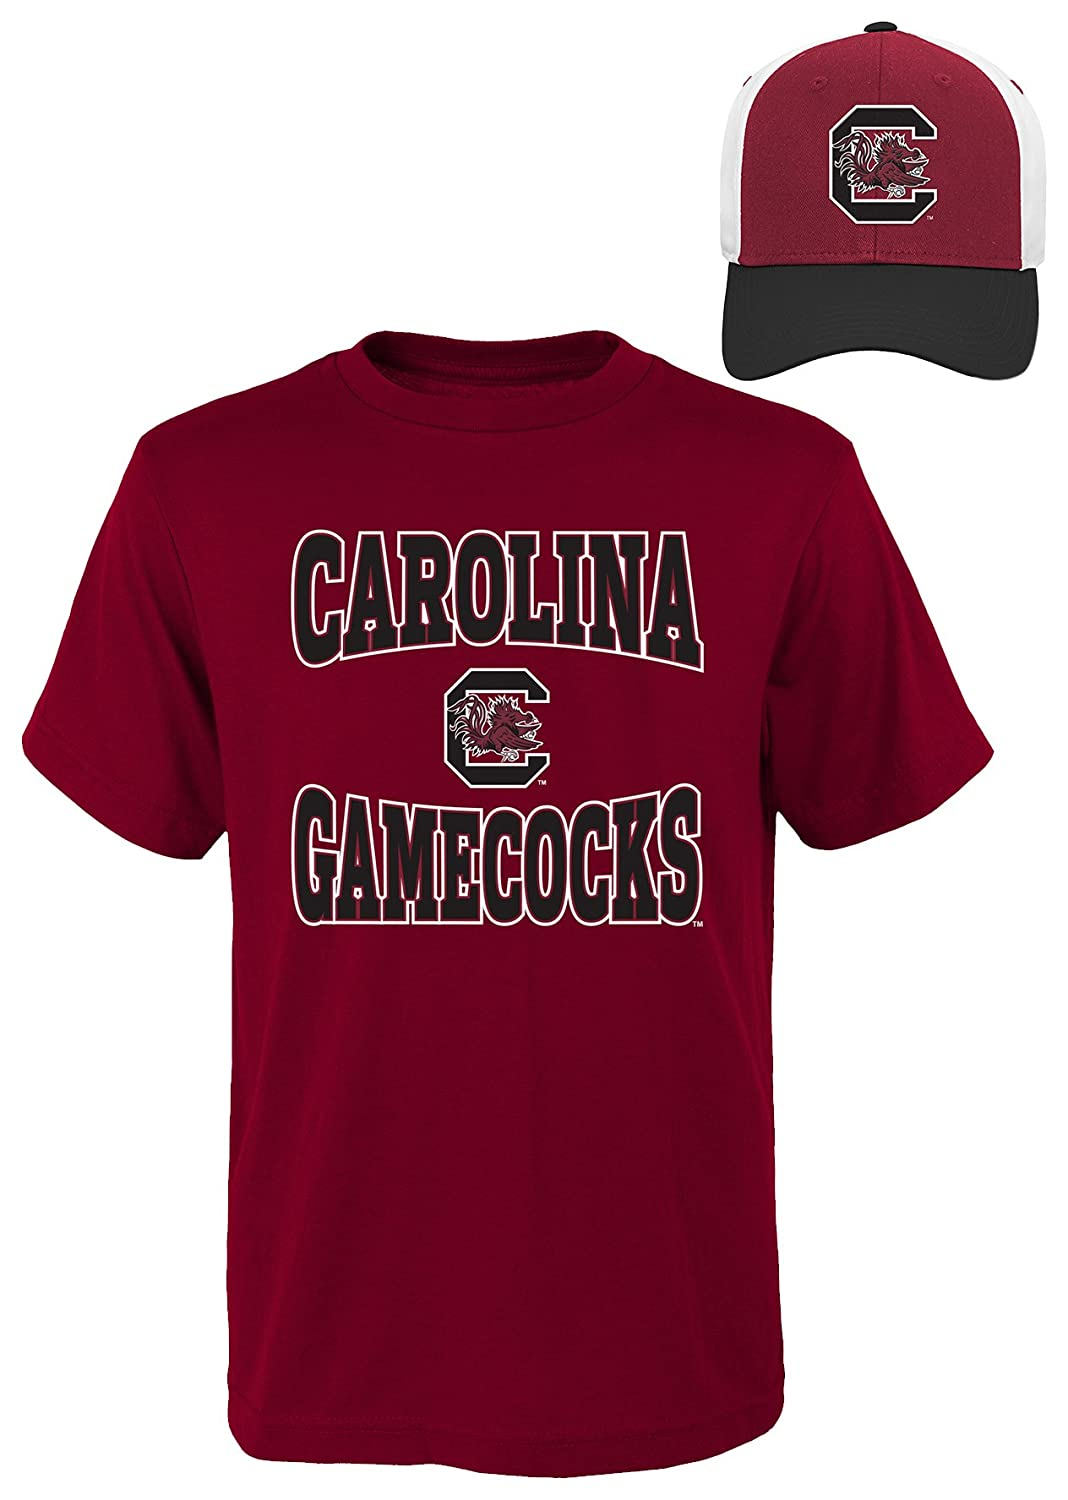 Assorted Colors Large NCAA South Carolina Fighting Gamecocks Youth Boys 8-20 Tee /& Hat Set 14-16